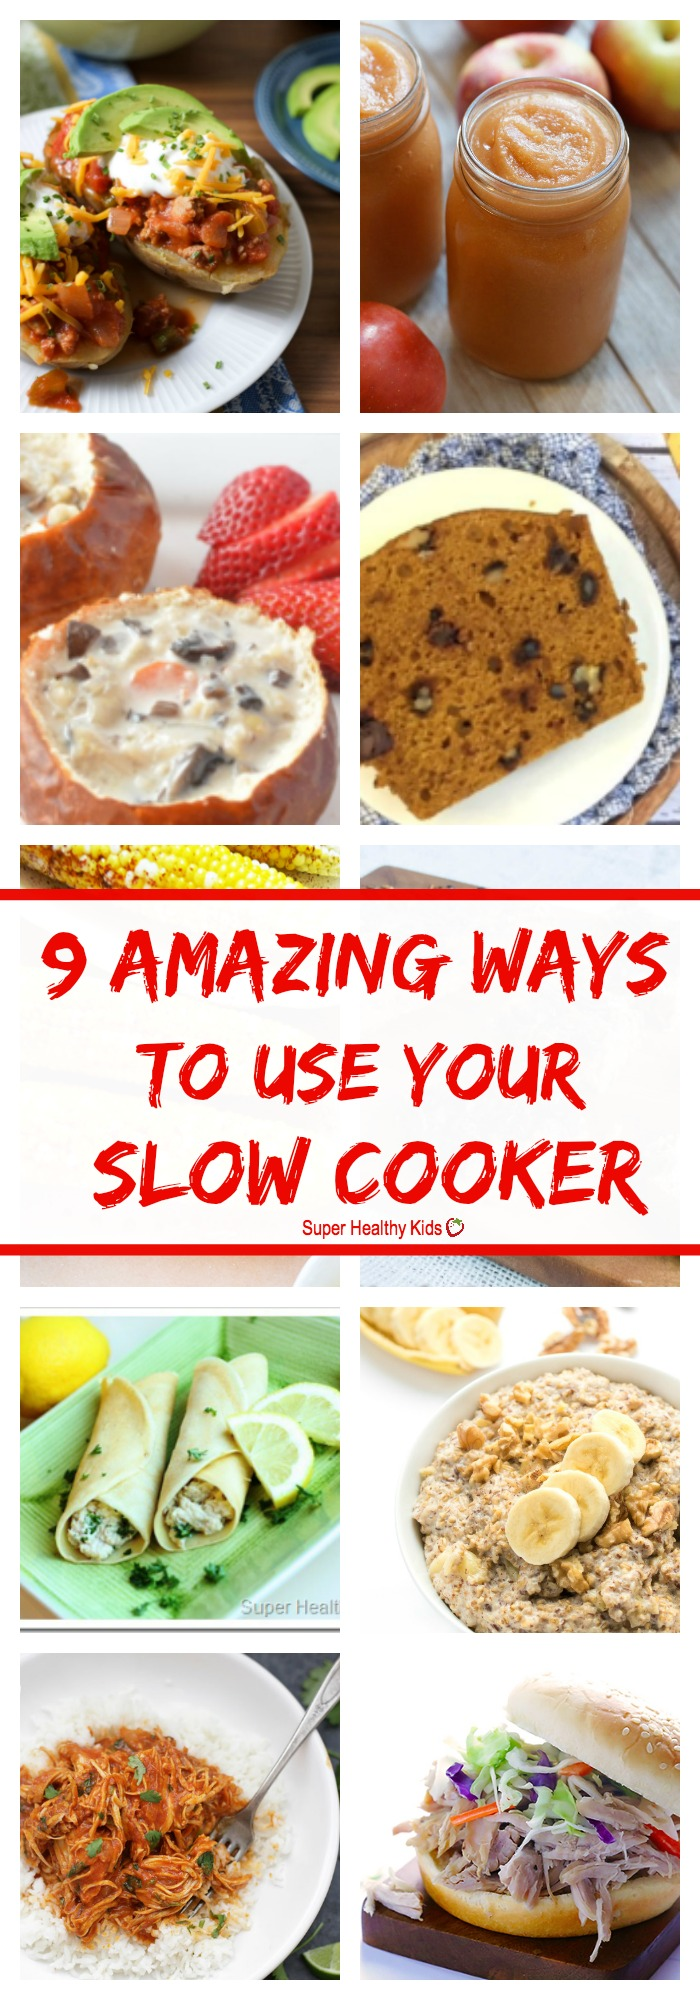 FOOD - 9 AMAZING Ways to Use Your Slow Cooker. Your slow cooker can make so many things you have probably never thought of! http://www.superhealthykids.com/9-amazing-ways-use-slow-cooker/